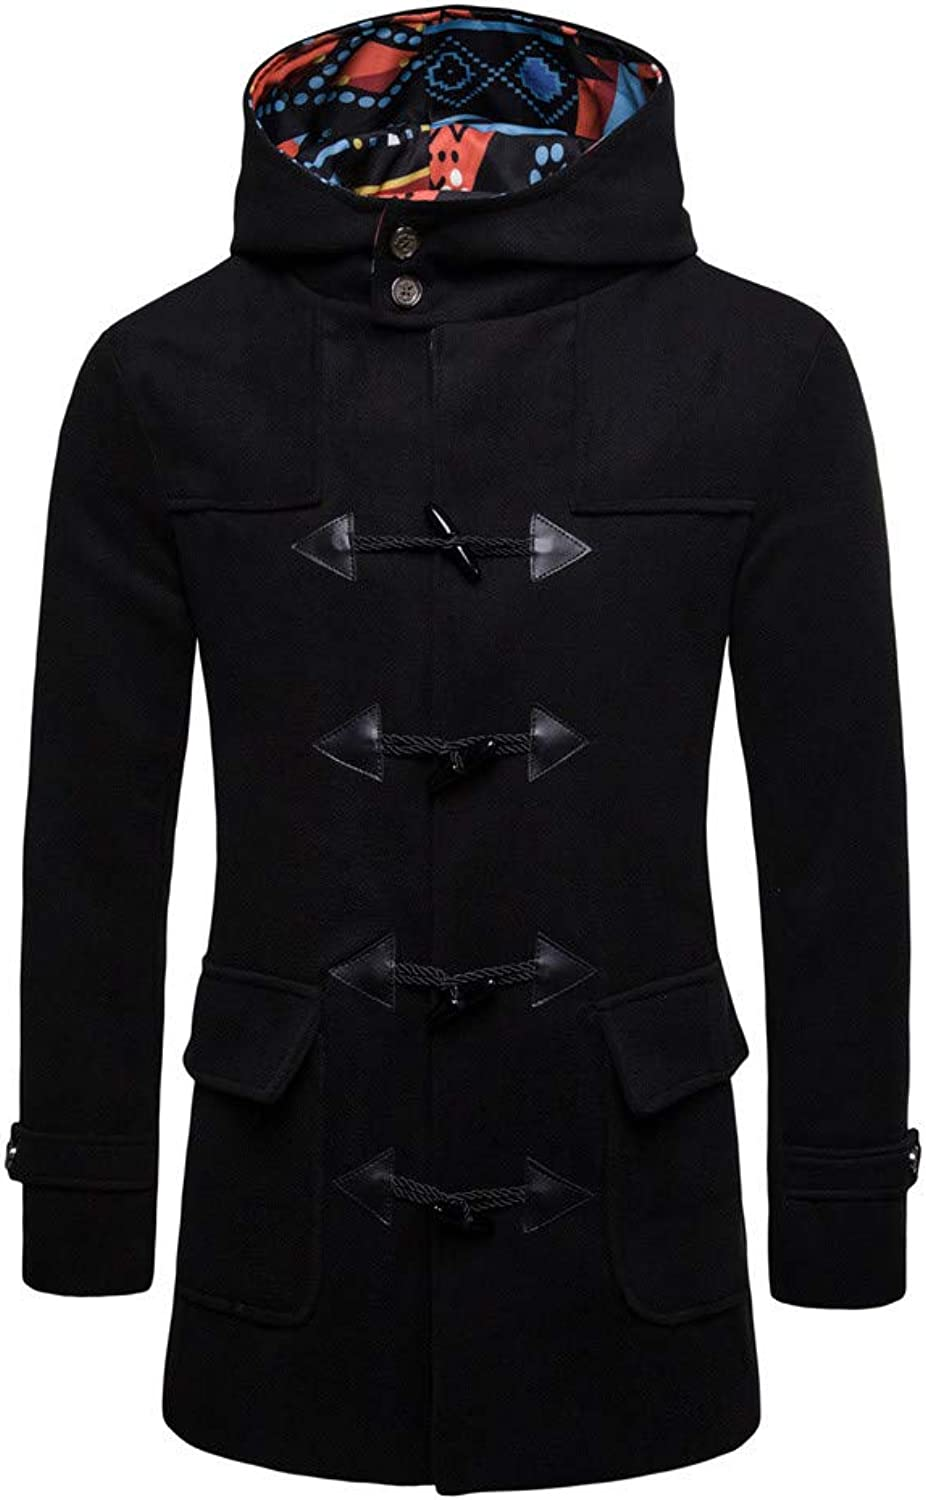 Mens Jacket Winter Trench Long Outwear Button Smart Overcoat Coats (color   Black, Size   XL)